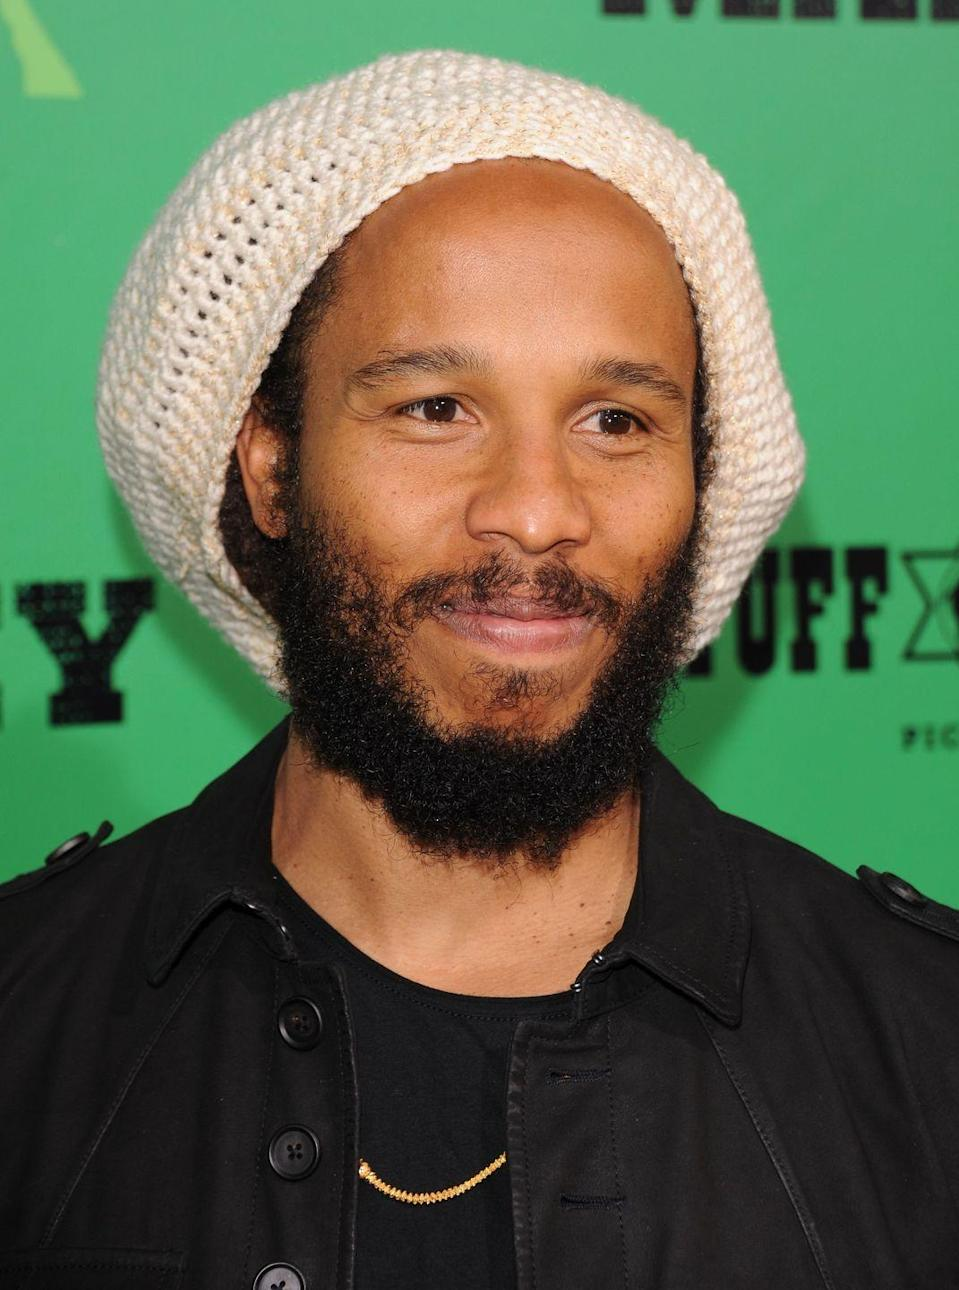 """<p><strong>Famous parent(s)</strong>: musician Bob Marley<br><strong>What it was like</strong>: """"I grew up with Dad before he was this well-known person. I was born before he was famous, you know?"""" he <a href=""""http://people.com/music/ziggy-marley-remembers-life-reggae-icon-dad-bob-marley-just-my-father/"""" rel=""""nofollow noopener"""" target=""""_blank"""" data-ylk=""""slk:said"""" class=""""link rapid-noclick-resp"""">said</a>. """"We grew up seeing just my father, a working musician with ideas and messages and ups and downs."""" </p>"""